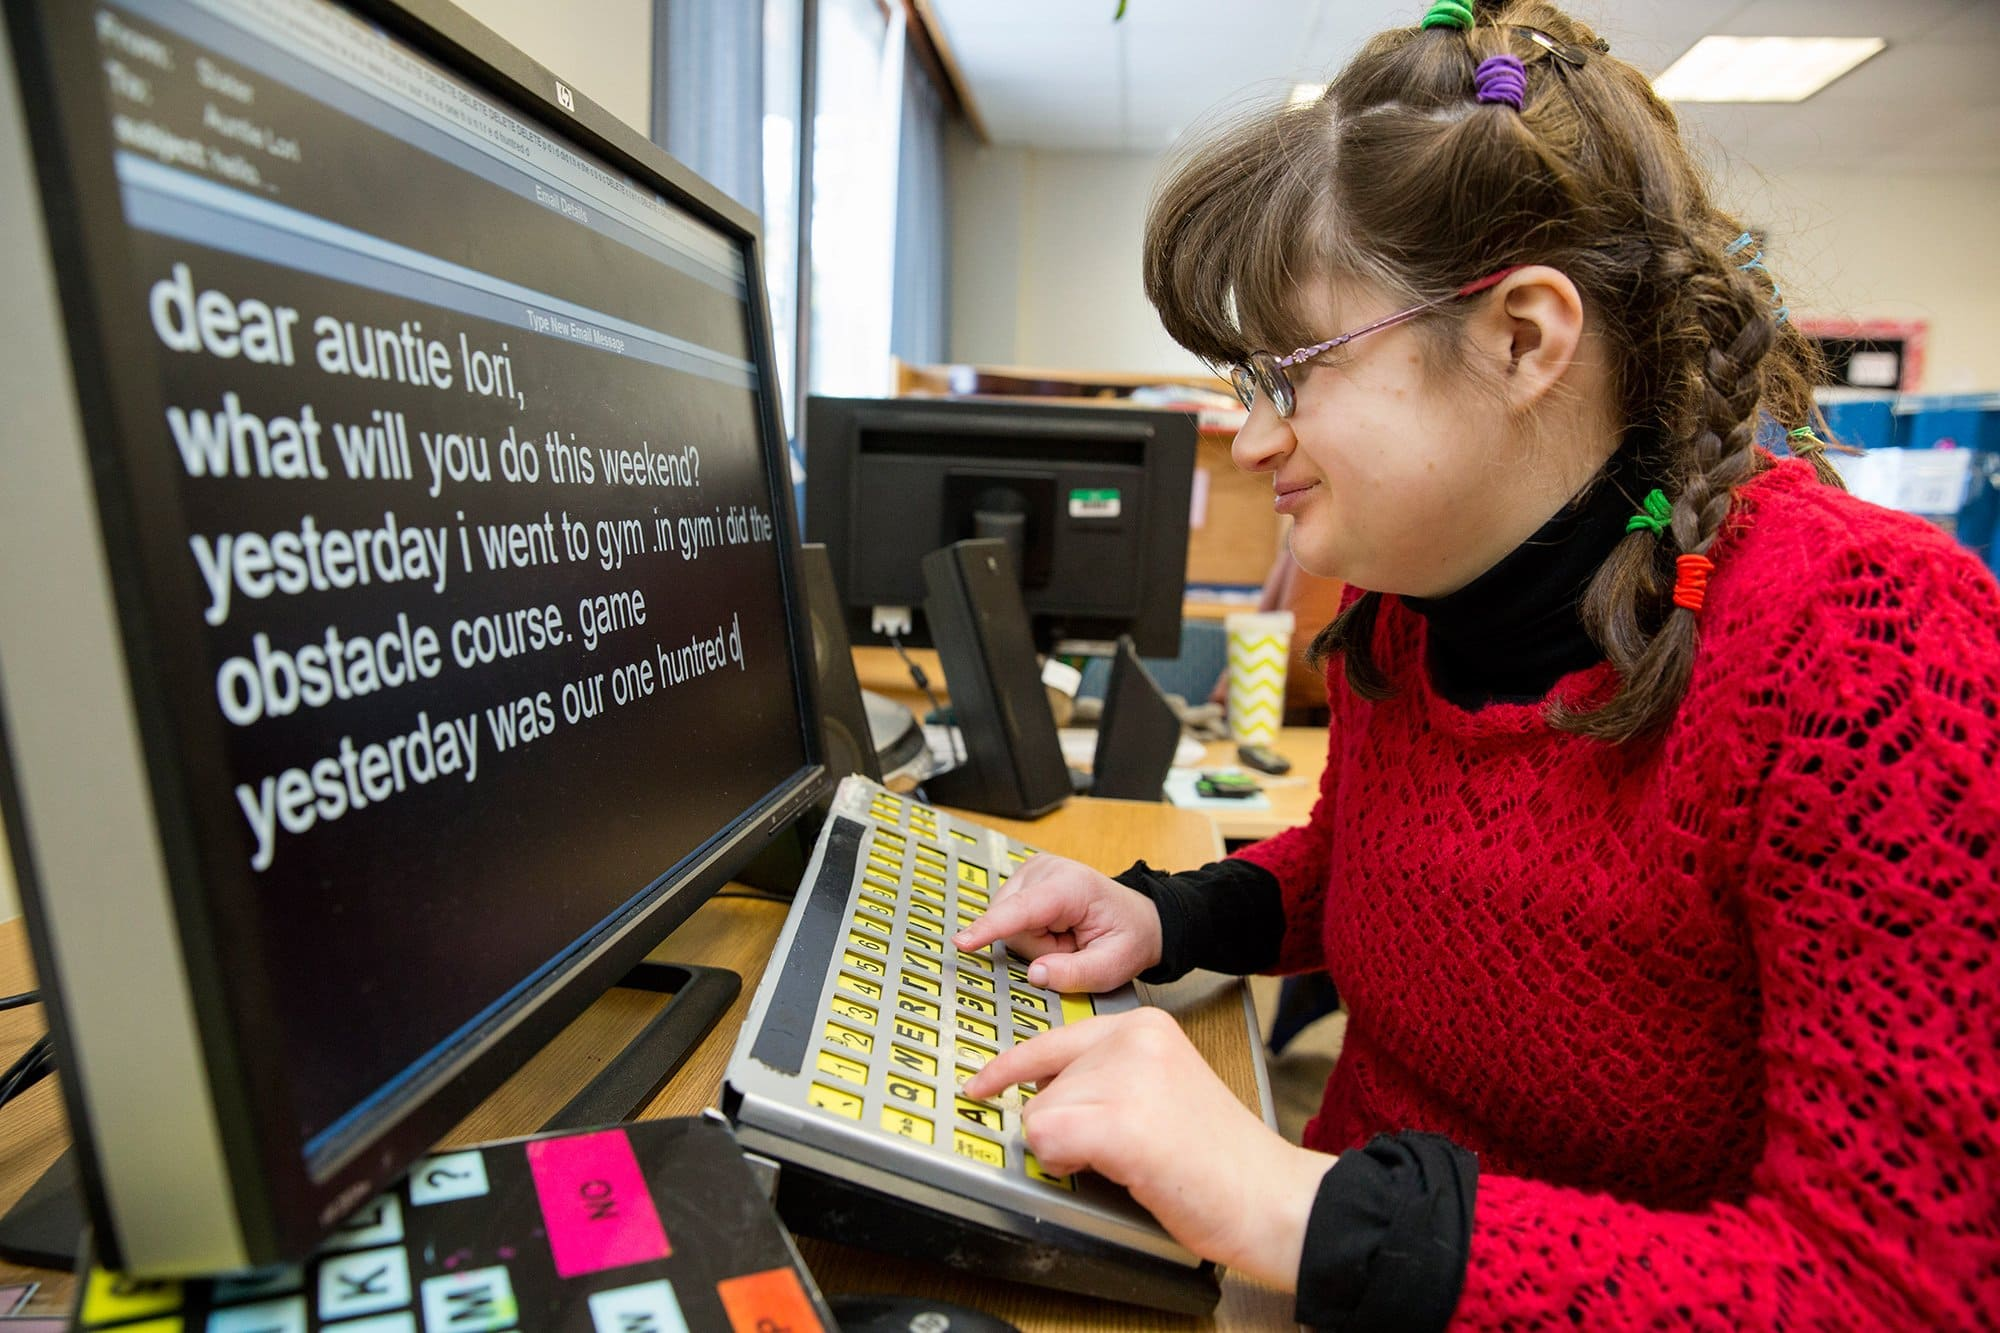 Slater, who is deafblind, types an email to her Aunt Lori. Photo Credit: Anna Miller